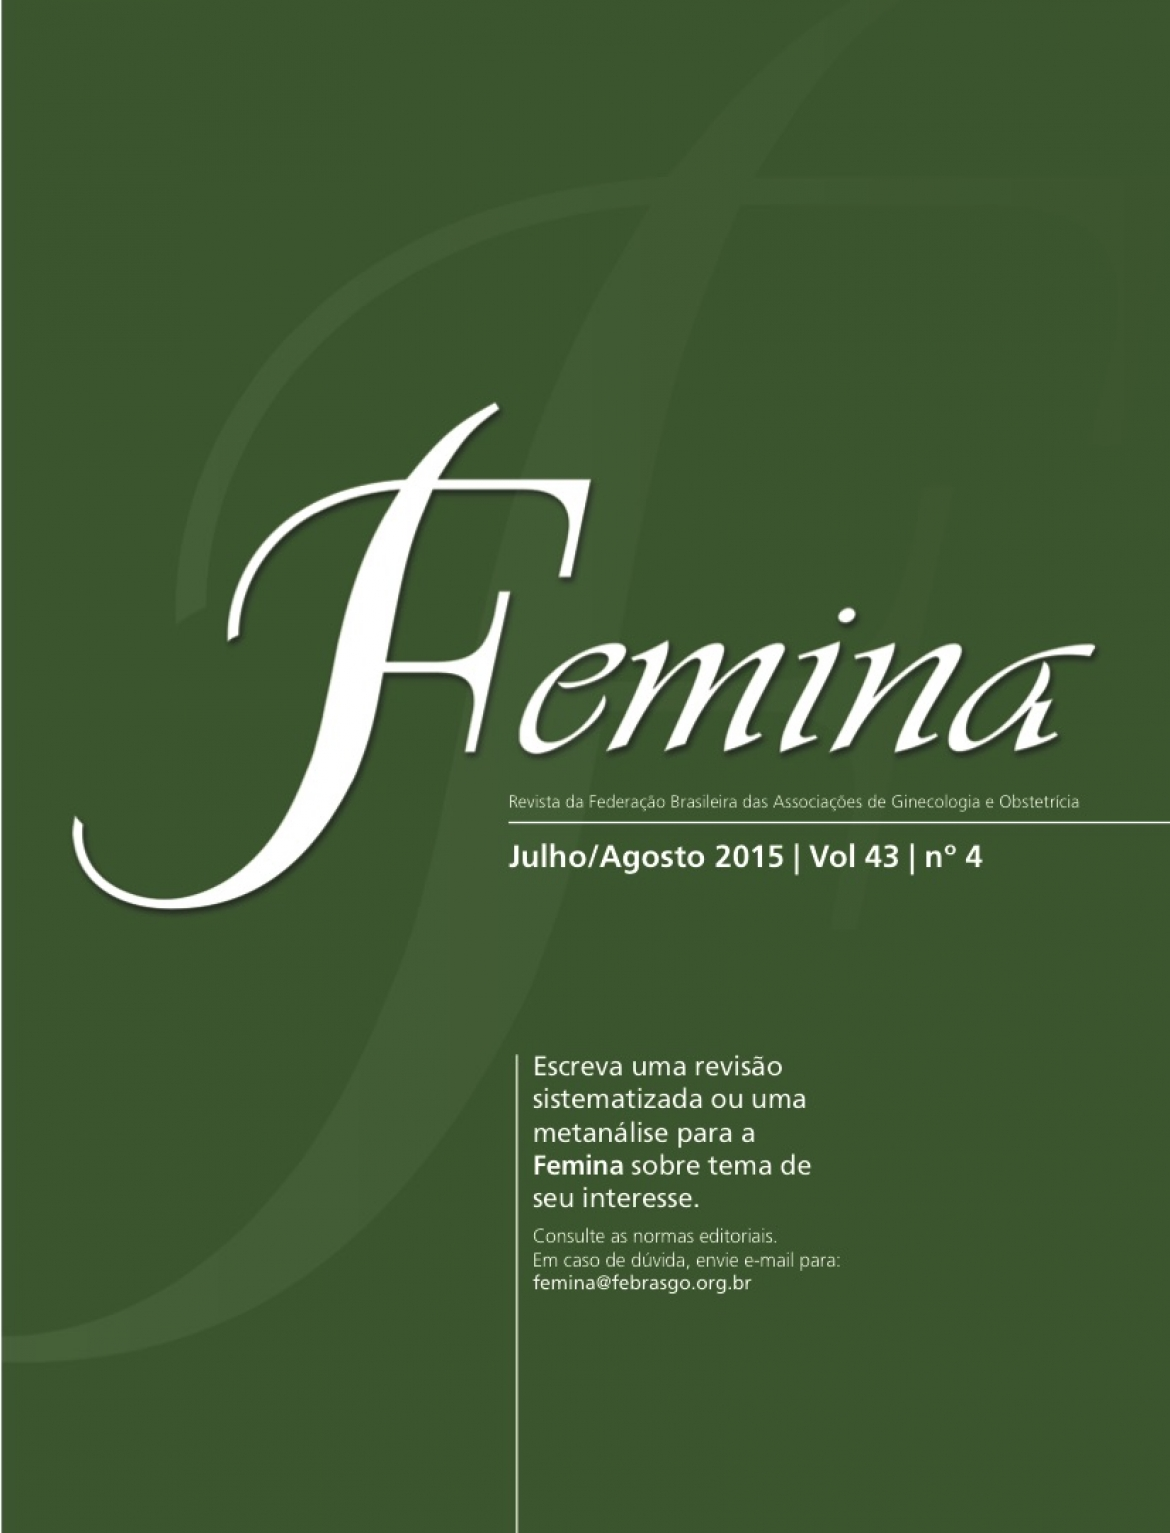 Revista Femina – 2015 | vol 43 | nº 4